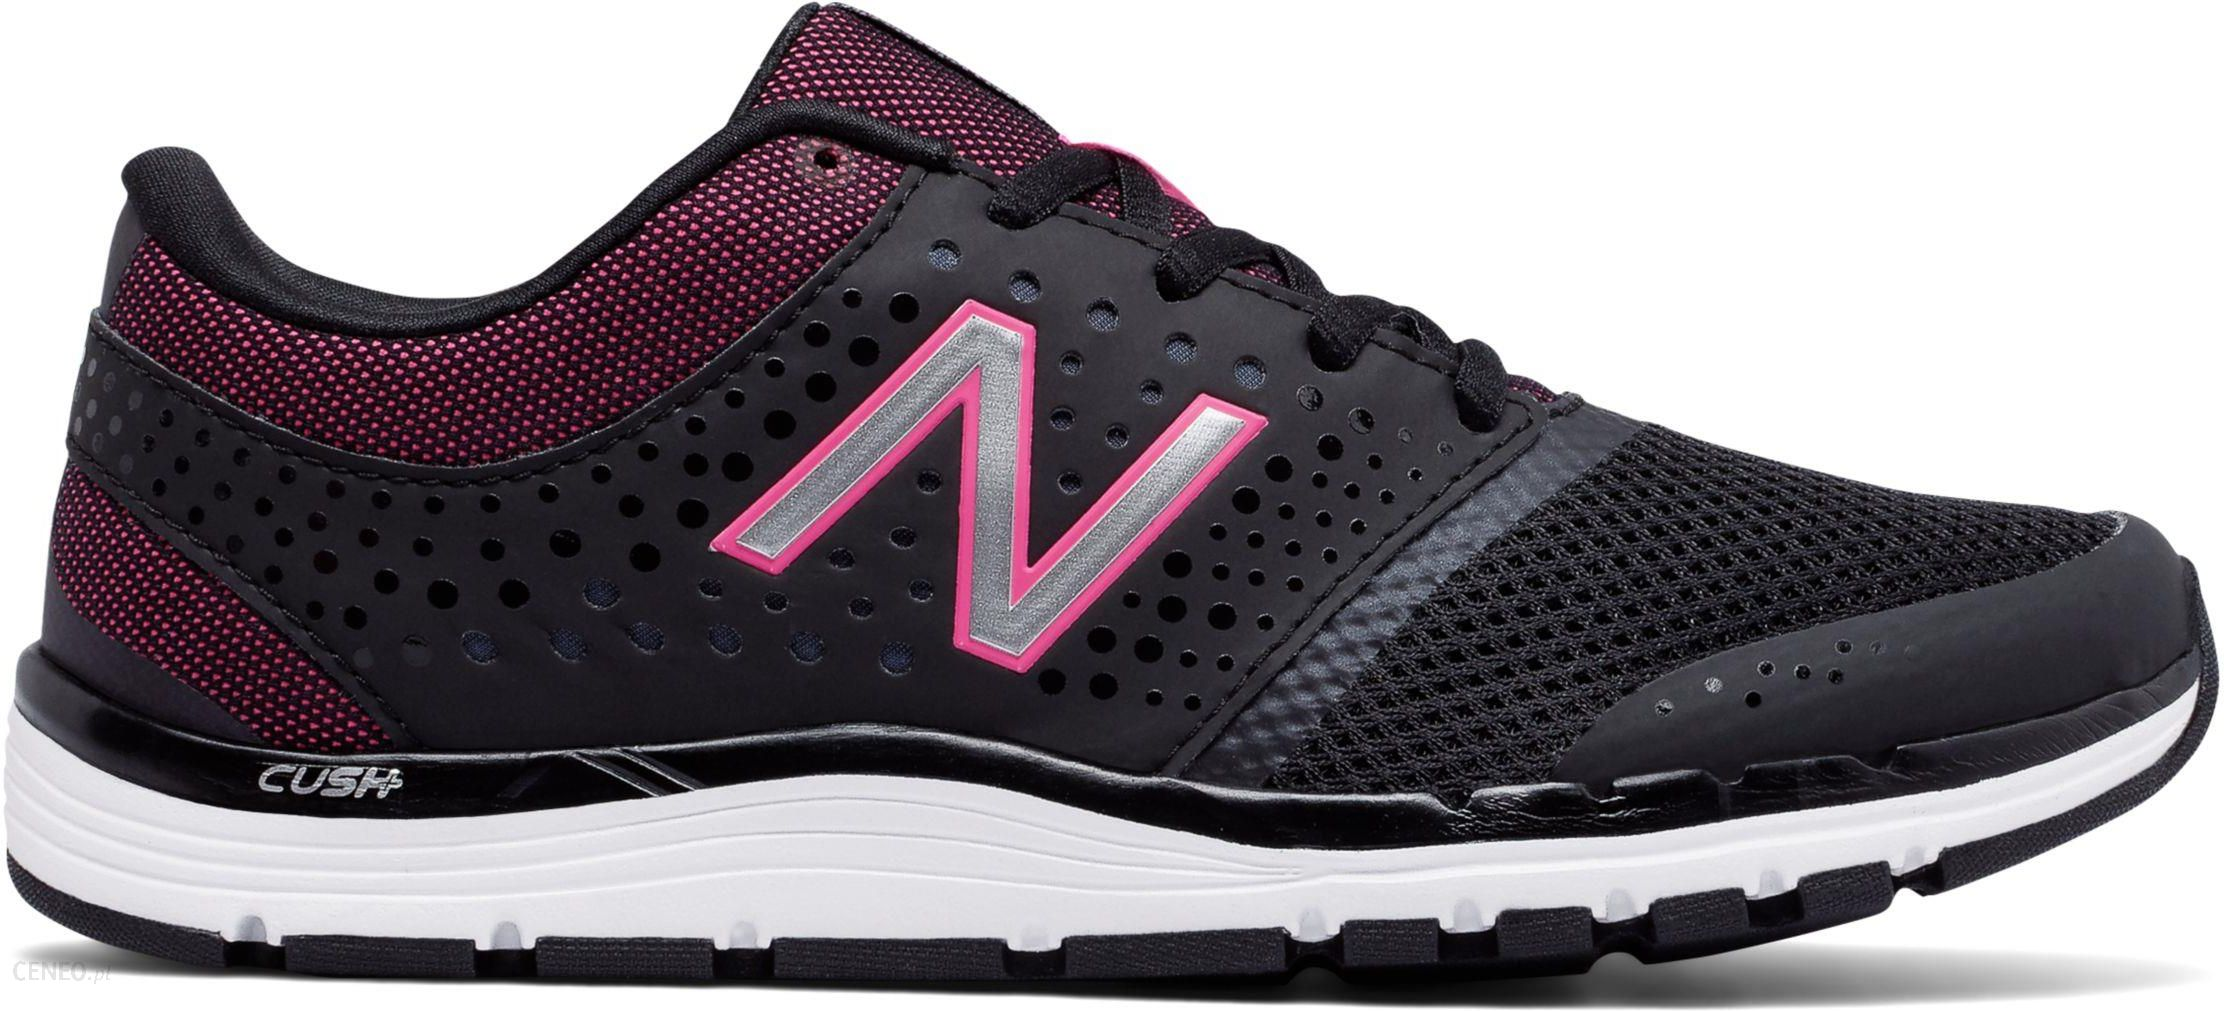 Planificado Humillar Facturable  New Balance : New Balance 577v4 Leather Trainer : Women's Training :  WX577BP4 - Ceneo.pl